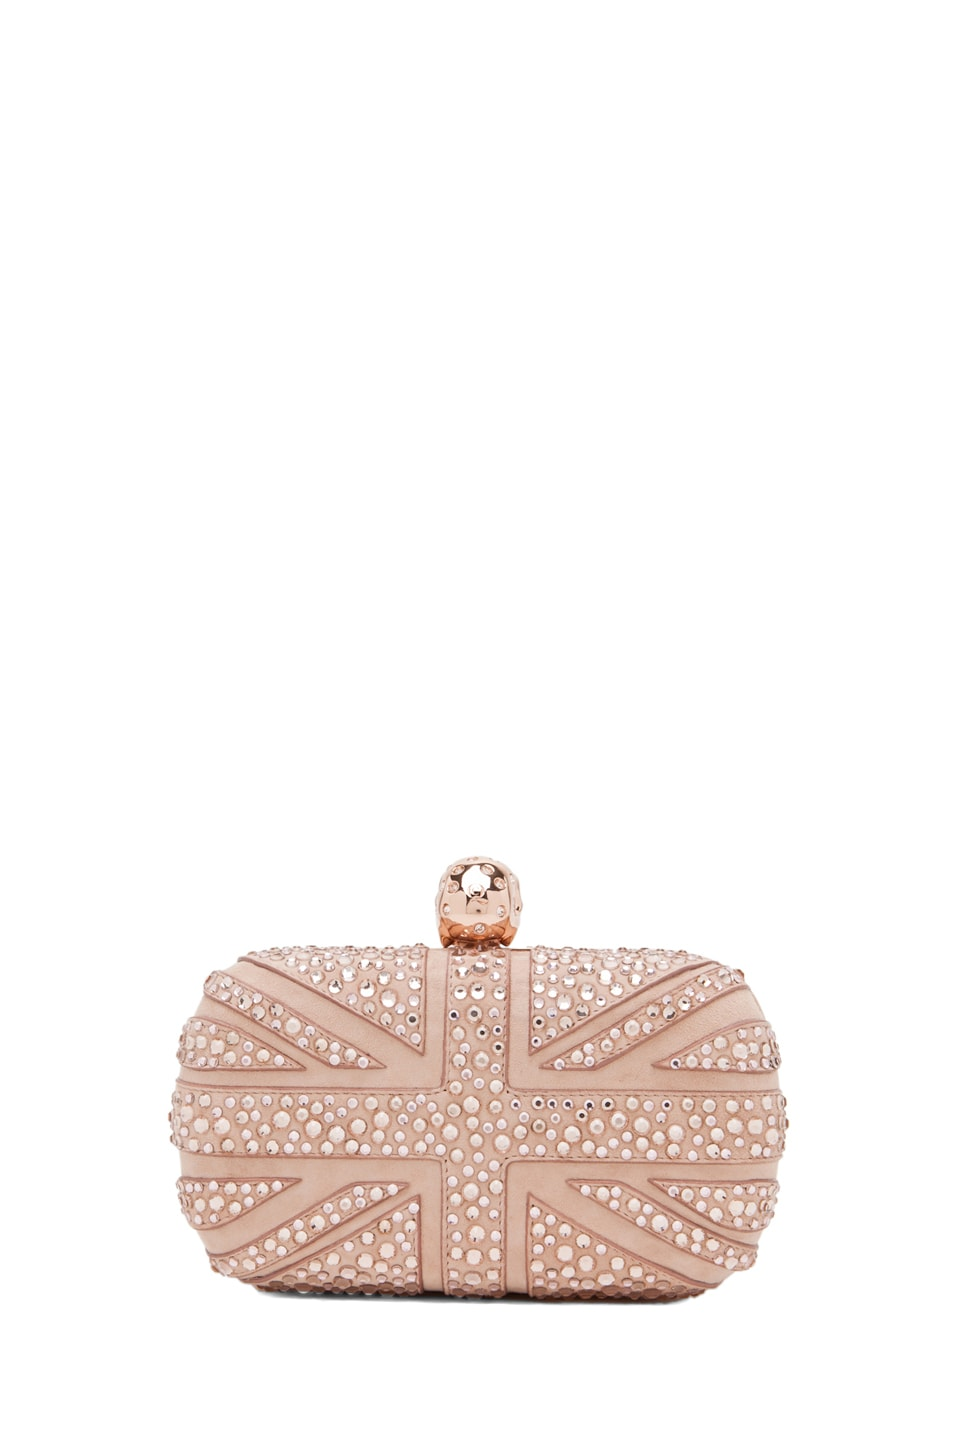 Image 2 of Alexander McQueen Skull Clutch in Pale Pink